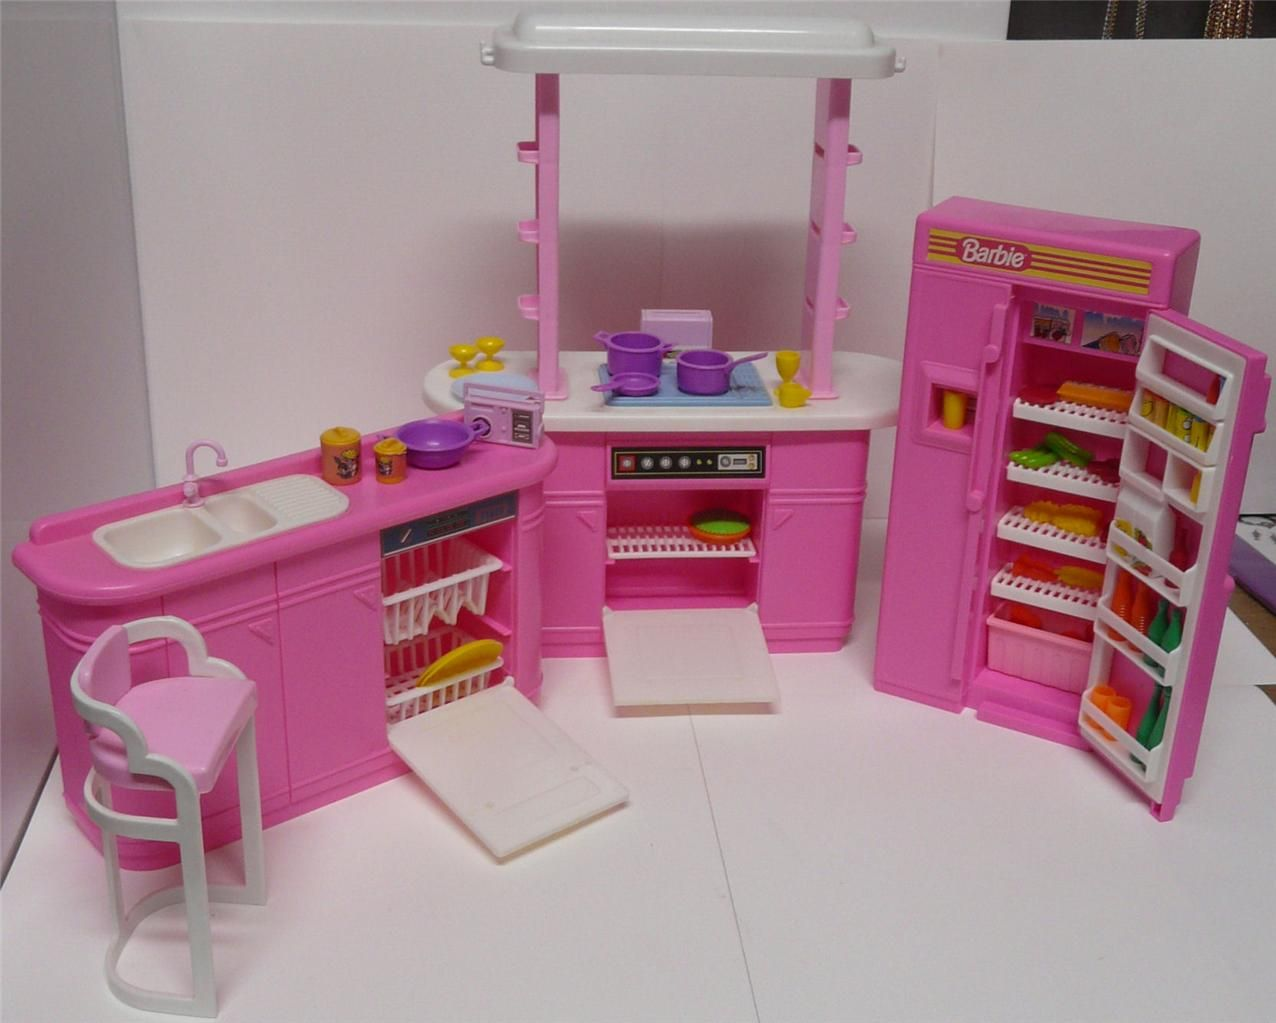 barbie kitchen playset furniture 1990 arcotoys mattel 8754